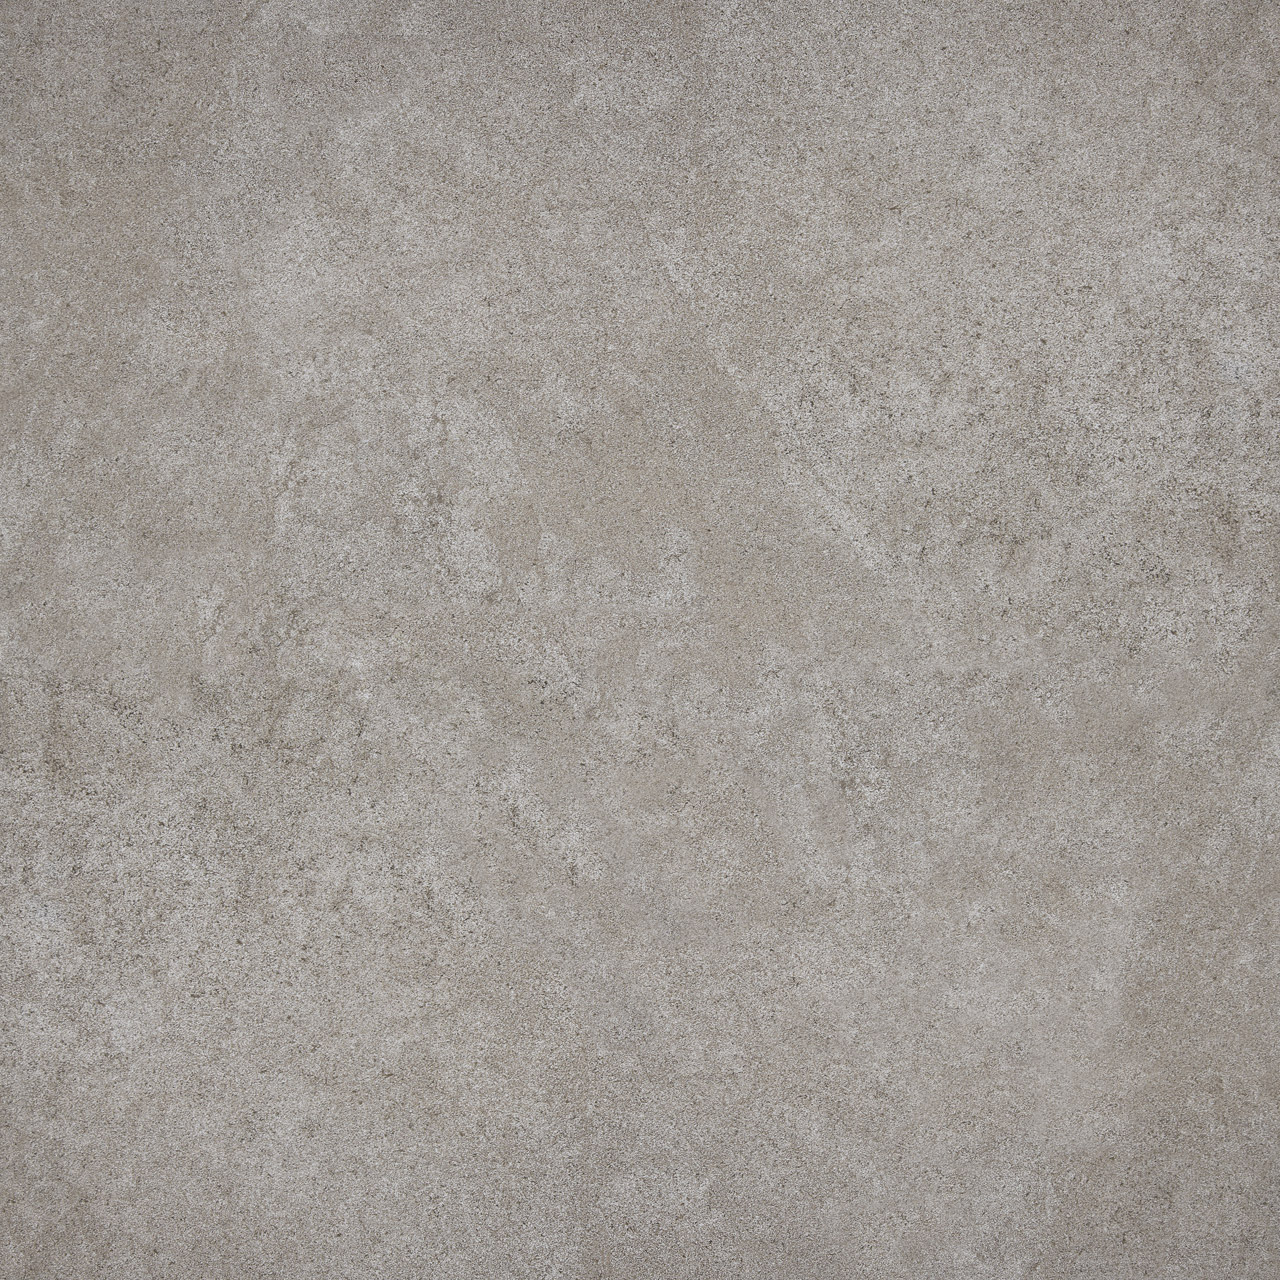 Matt grey porcelain floor tile matt grey porcelain floor tile dailygadgetfo Choice Image